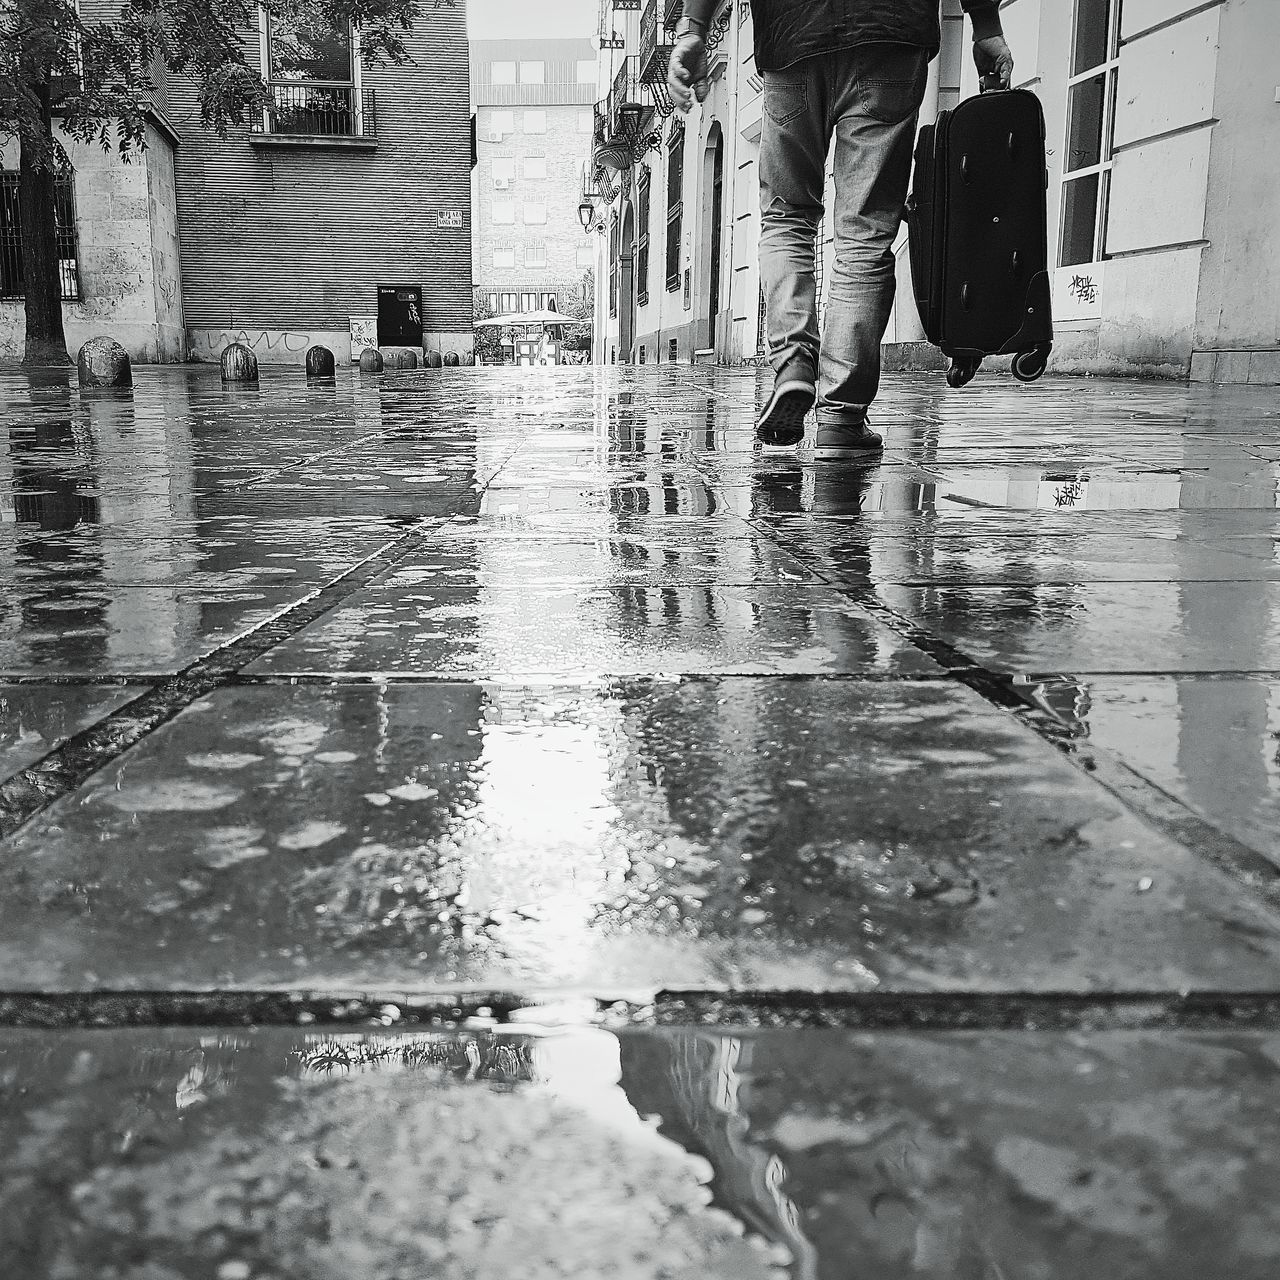 LOW SECTION OF WOMAN WALKING ON WET FOOTPATH IN CITY DURING MONSOON